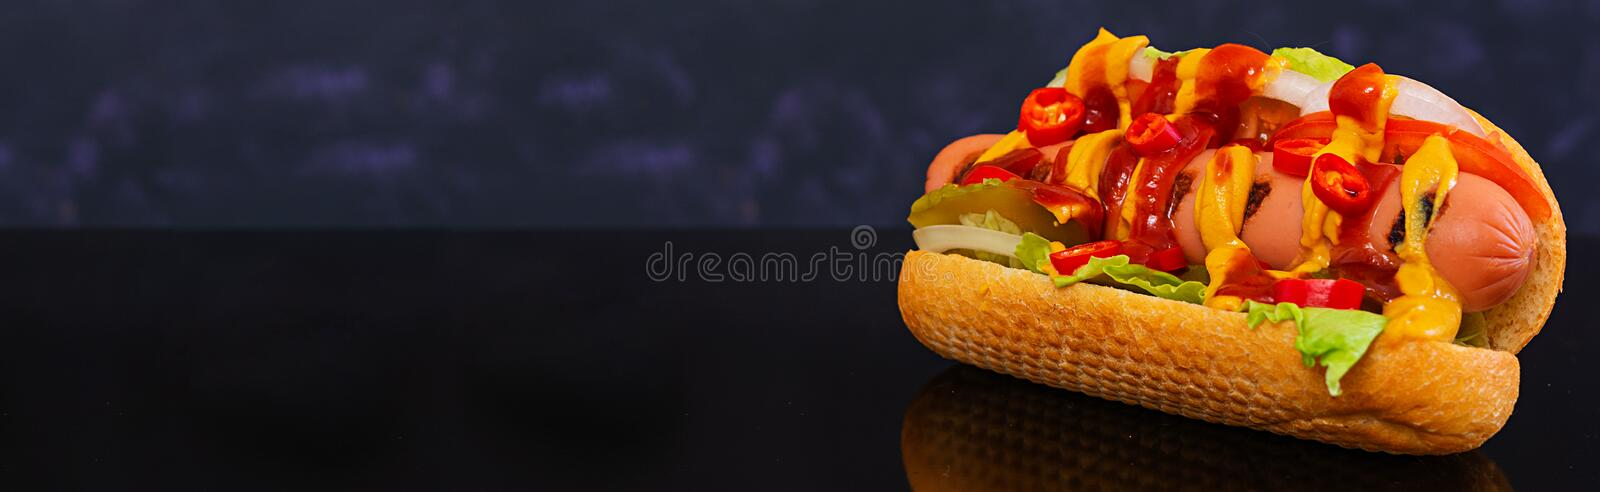 Delicious homemade hot dog on dark background. Banner.  royalty free stock images